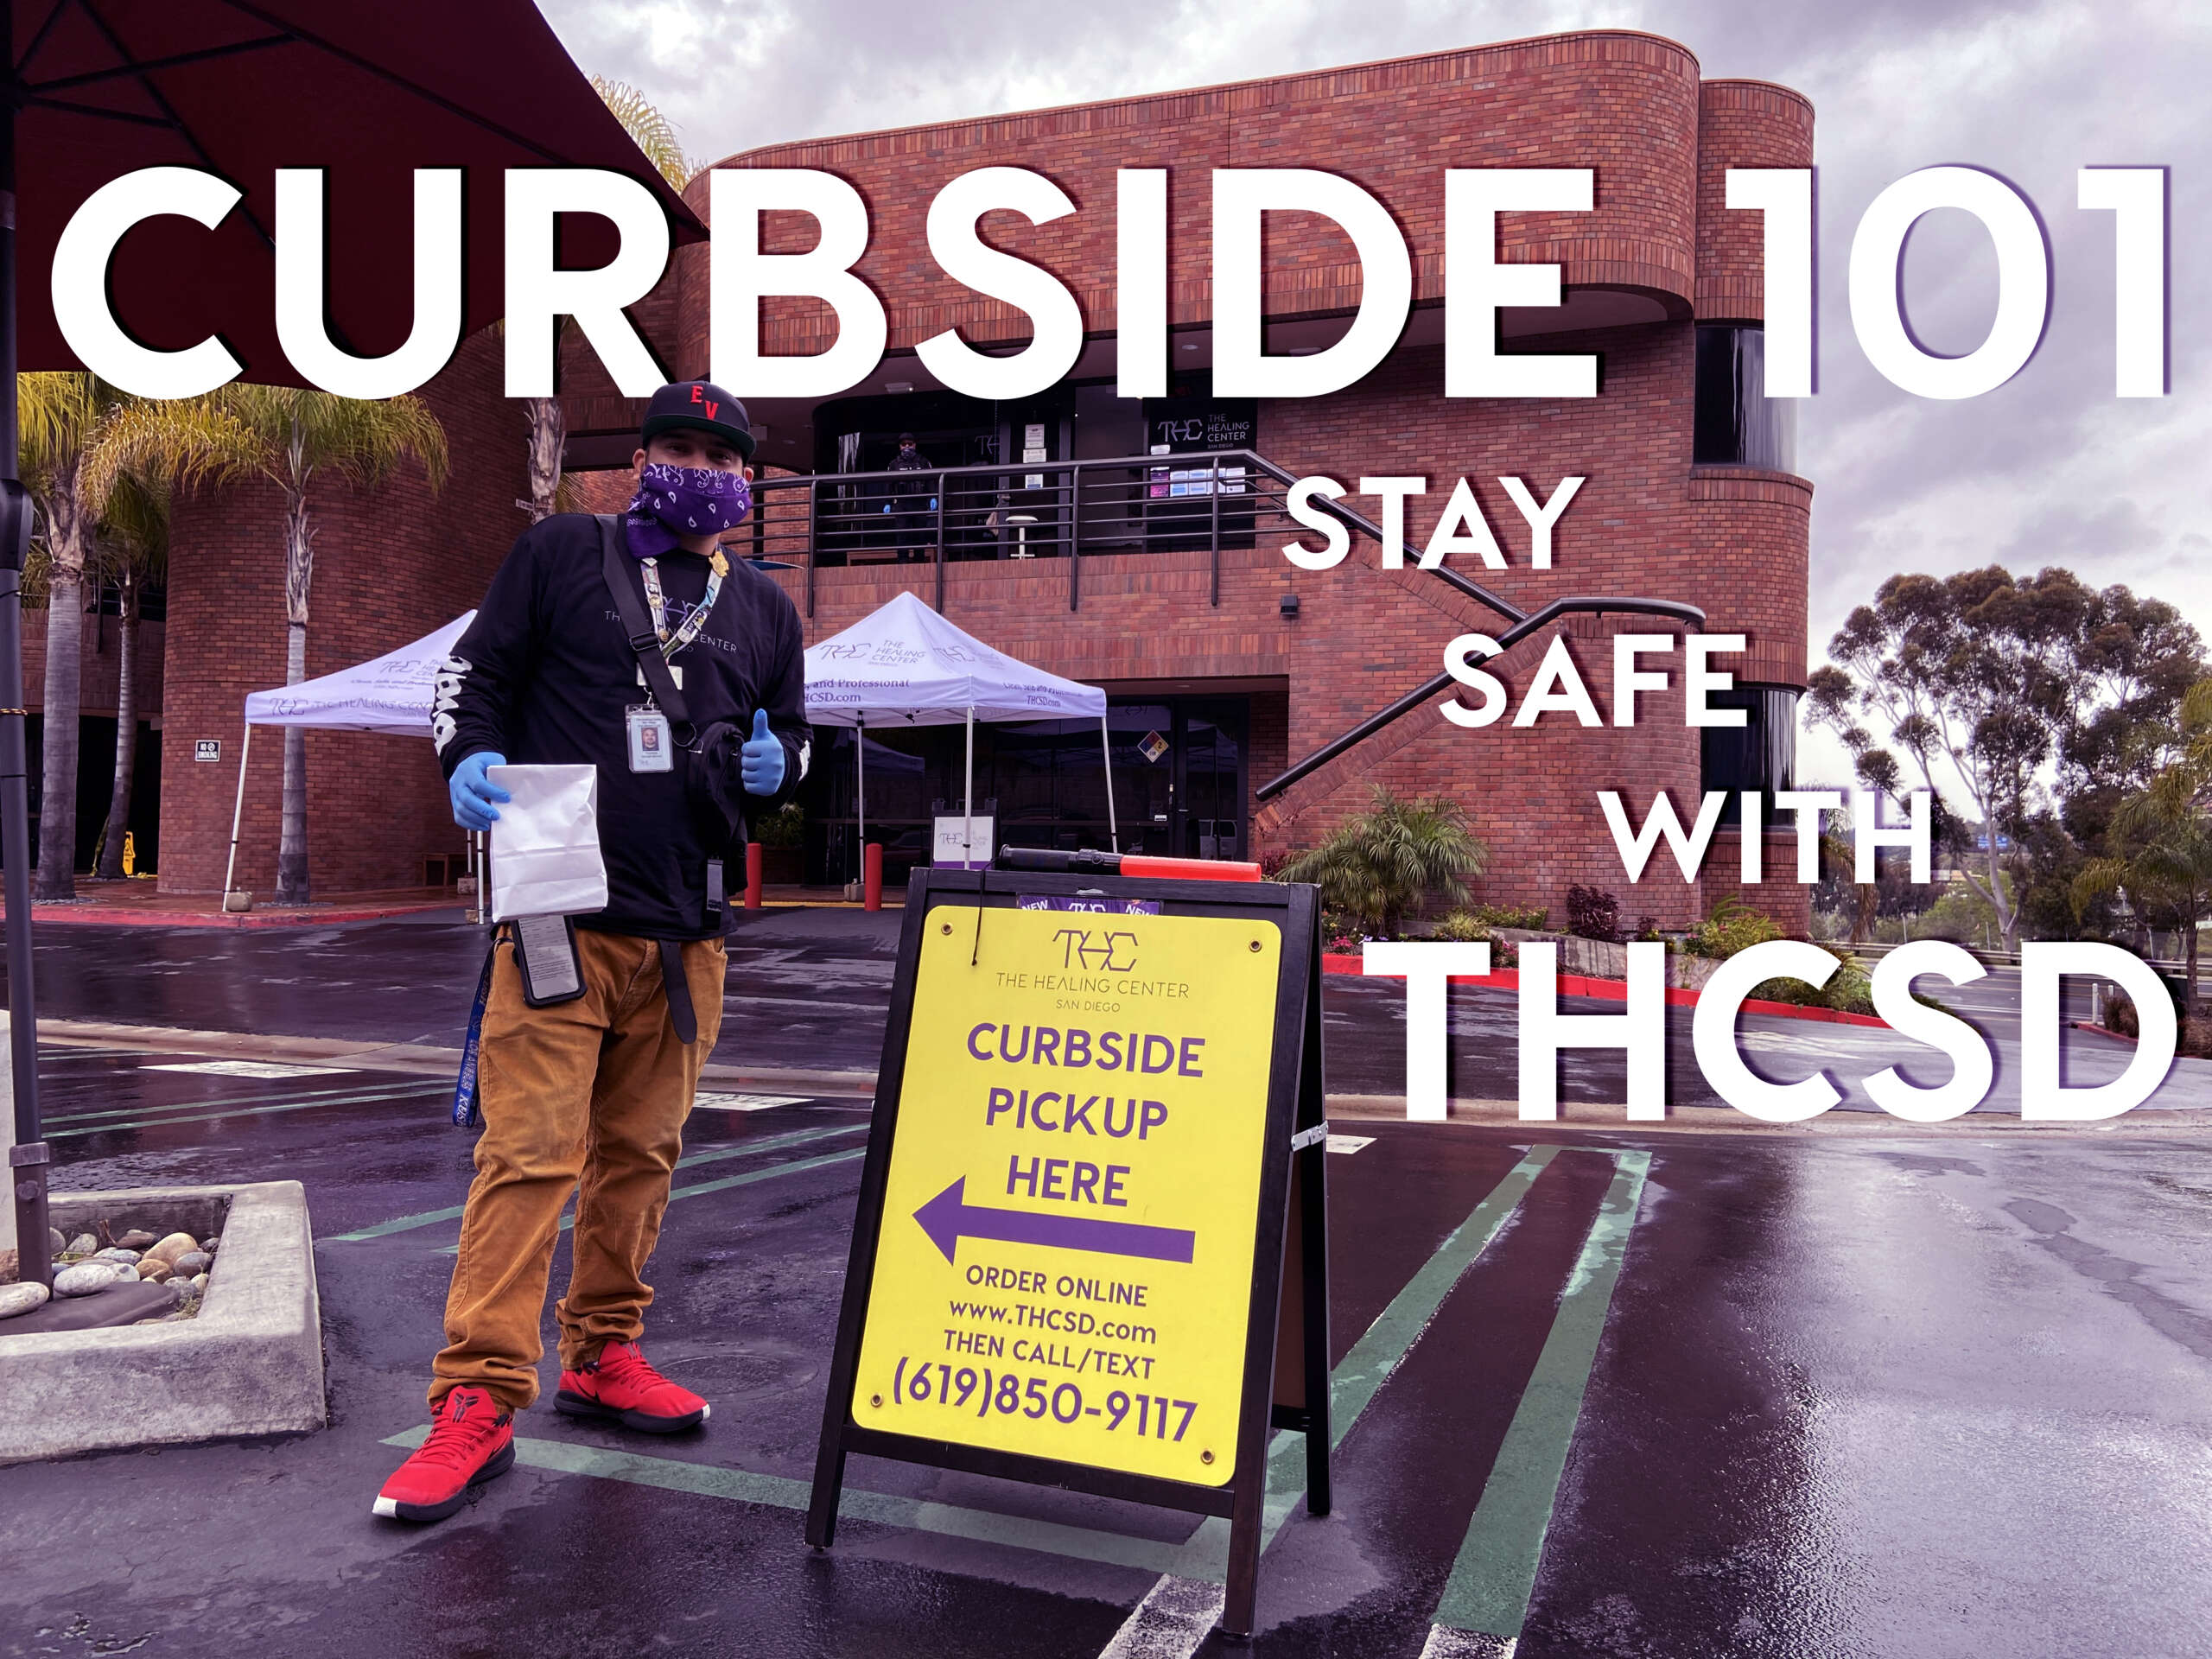 Curbside 101: Stay Safe with THCSD